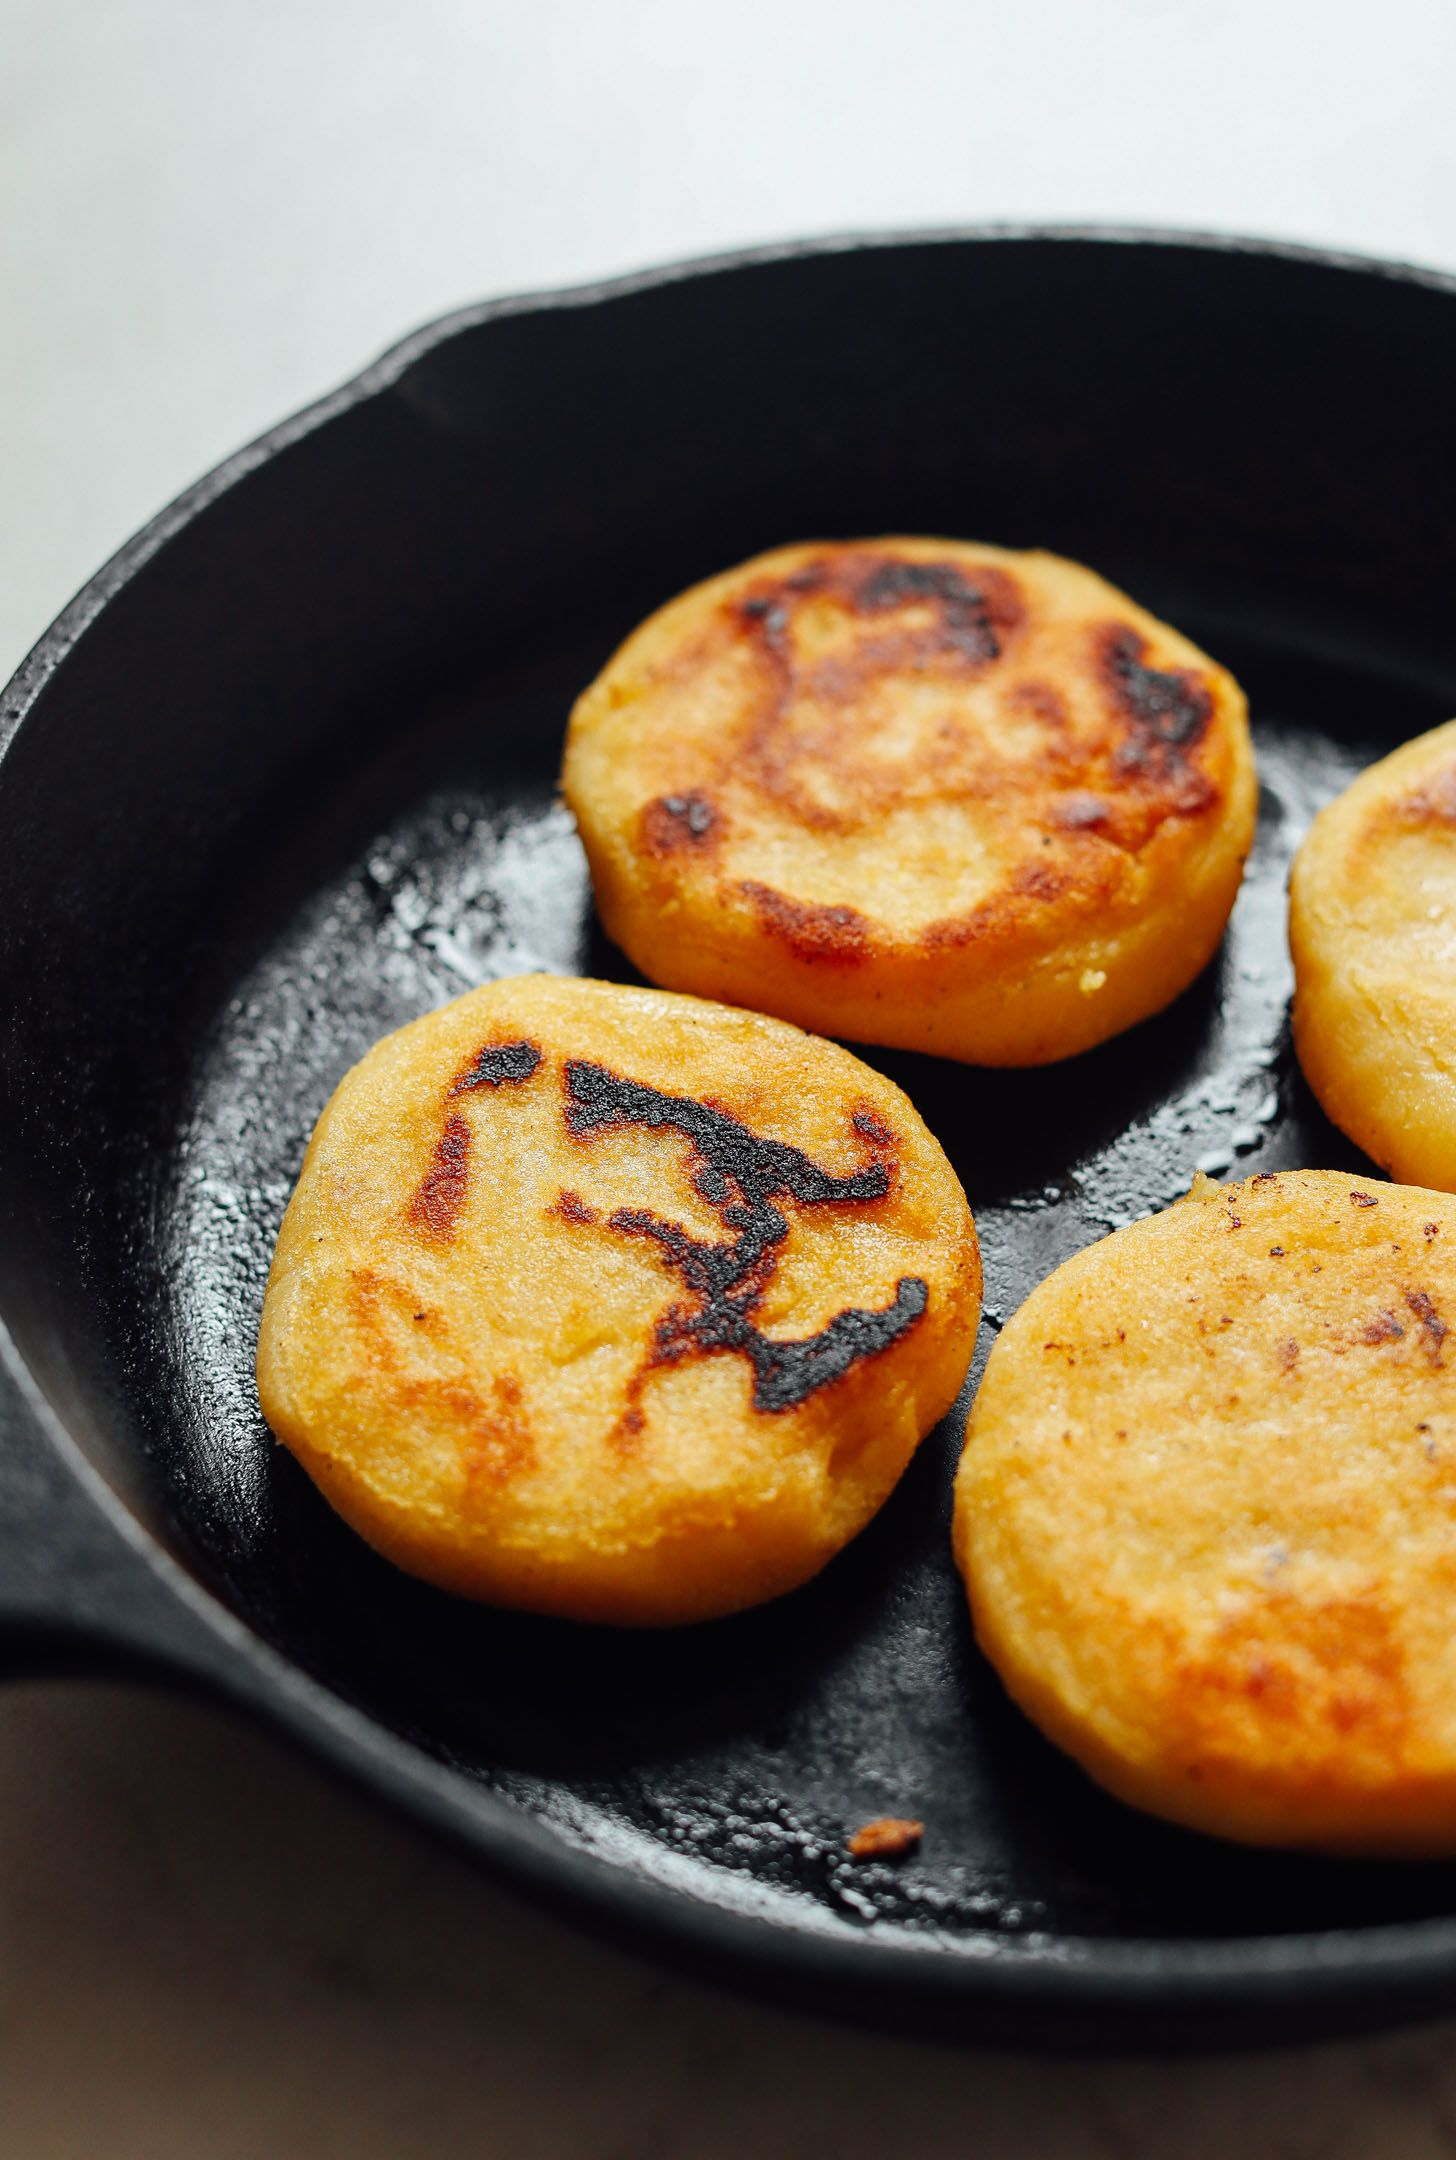 How To Make Arepas 3 Ingredients